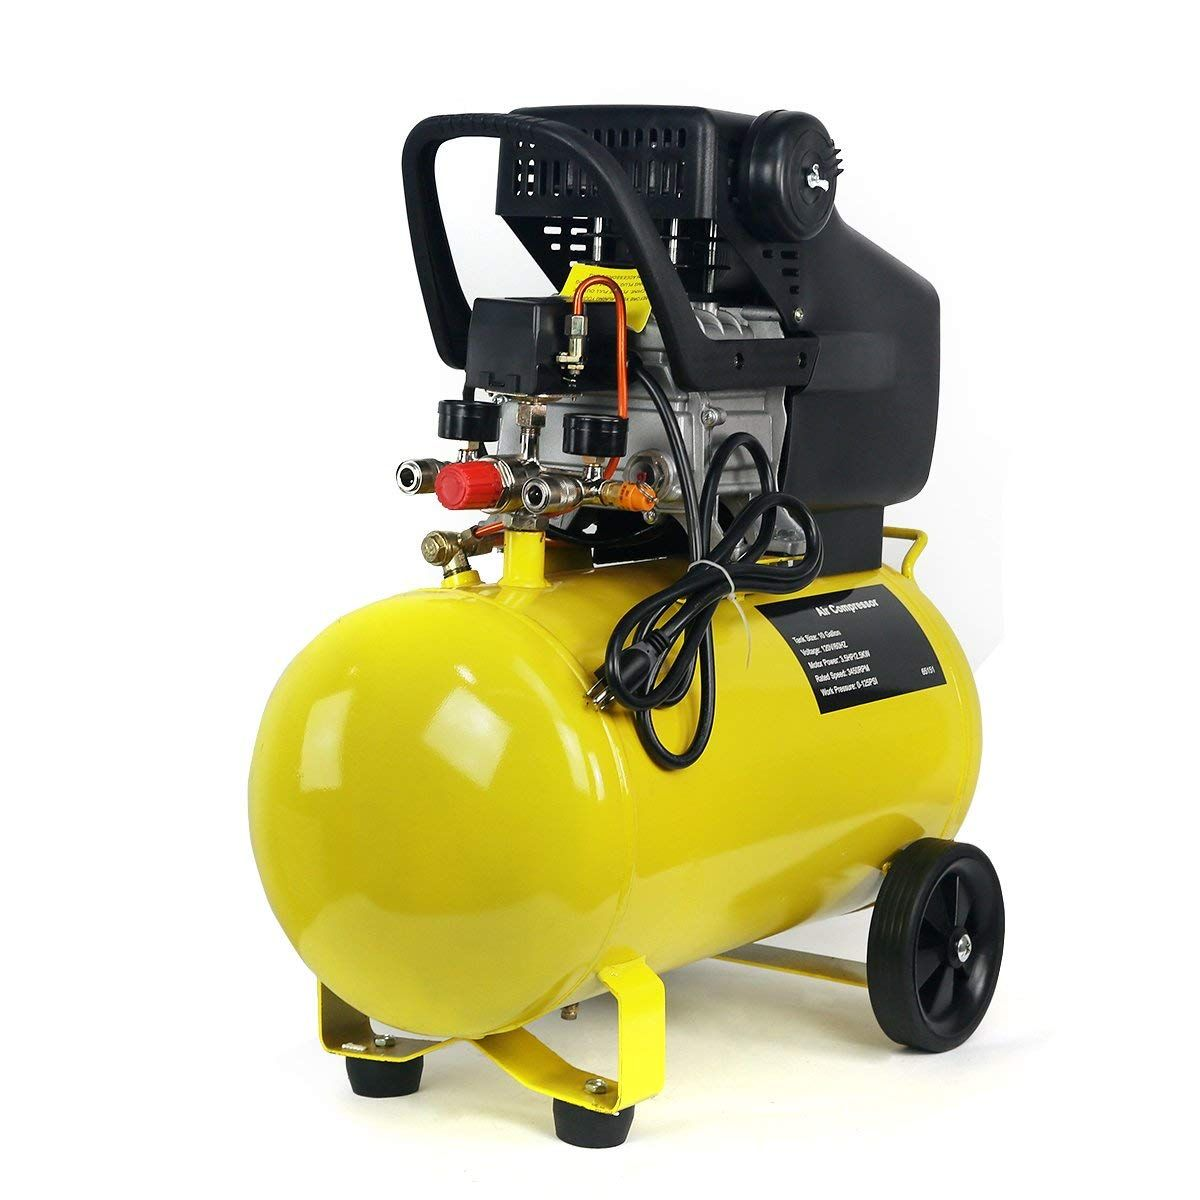 3 5hp 10 Gallon Pneumatic Portable Air Compressor With Tank Air Compressor Portable Air Compressor Compressor